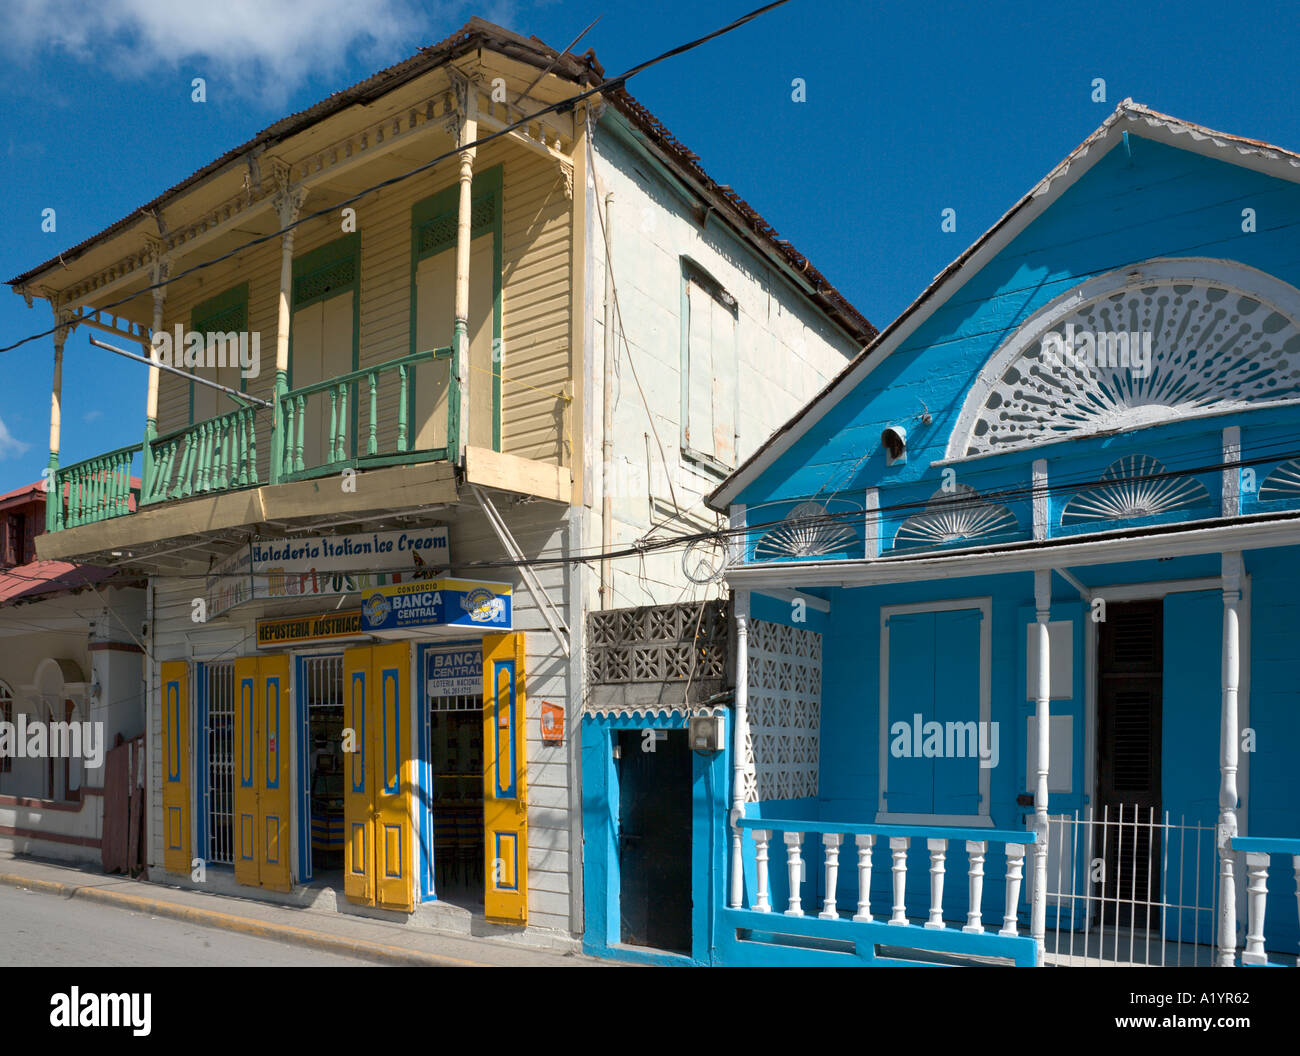 Typical local houses in the old town, Puerto Plata, North Coast, Dominican Republic, Caribbean - Stock Image